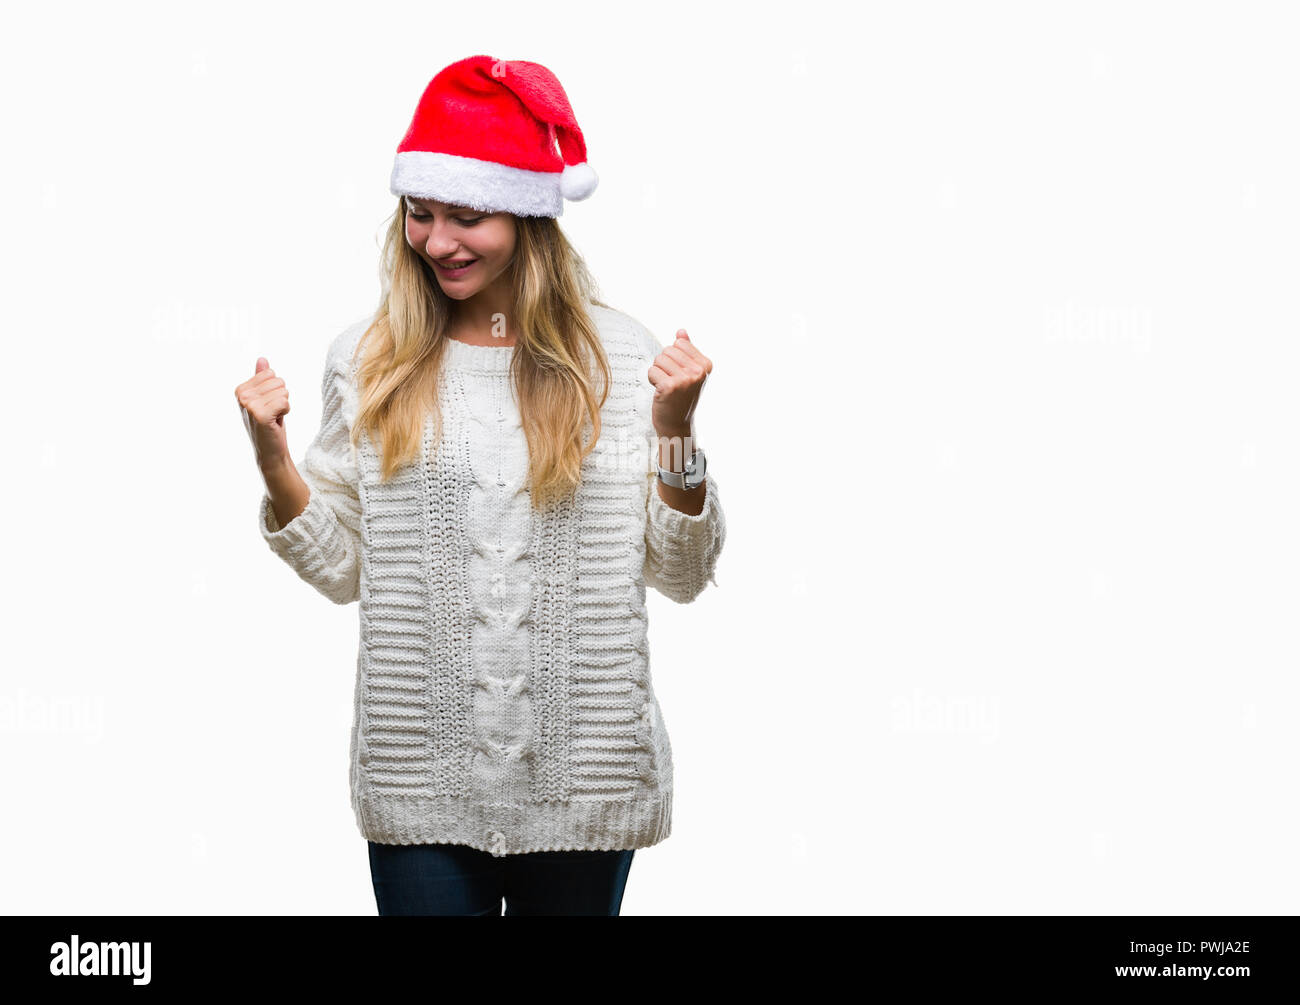 Young beautiful blonde woman wearing christmas hat over isolated background very happy and excited doing winner gesture with arms raised, smiling and  - Stock Image